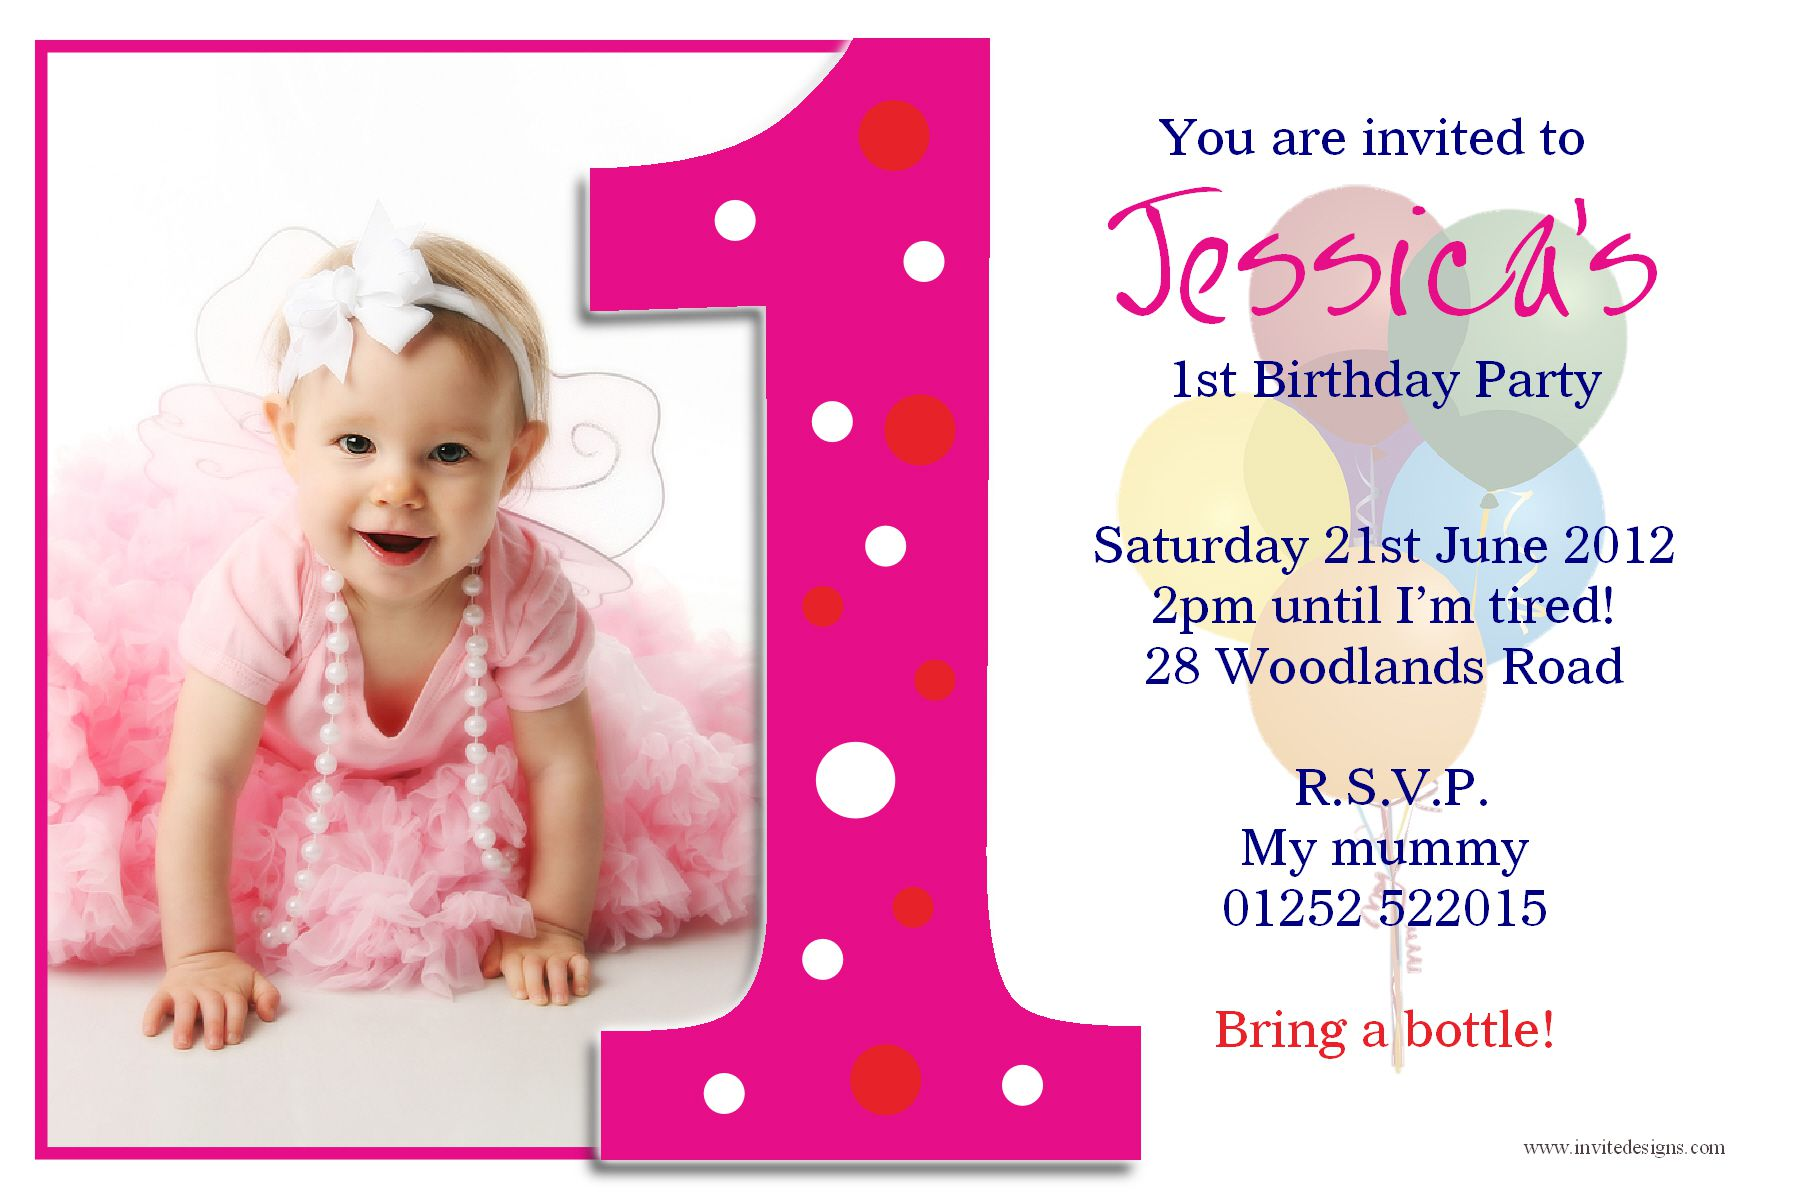 1 year old birthday invitation templates free ; Birthday-Invitation-Design-and-get-inspired-to-create-your-own-birthday-Invitation-design-with-this-ideas-1